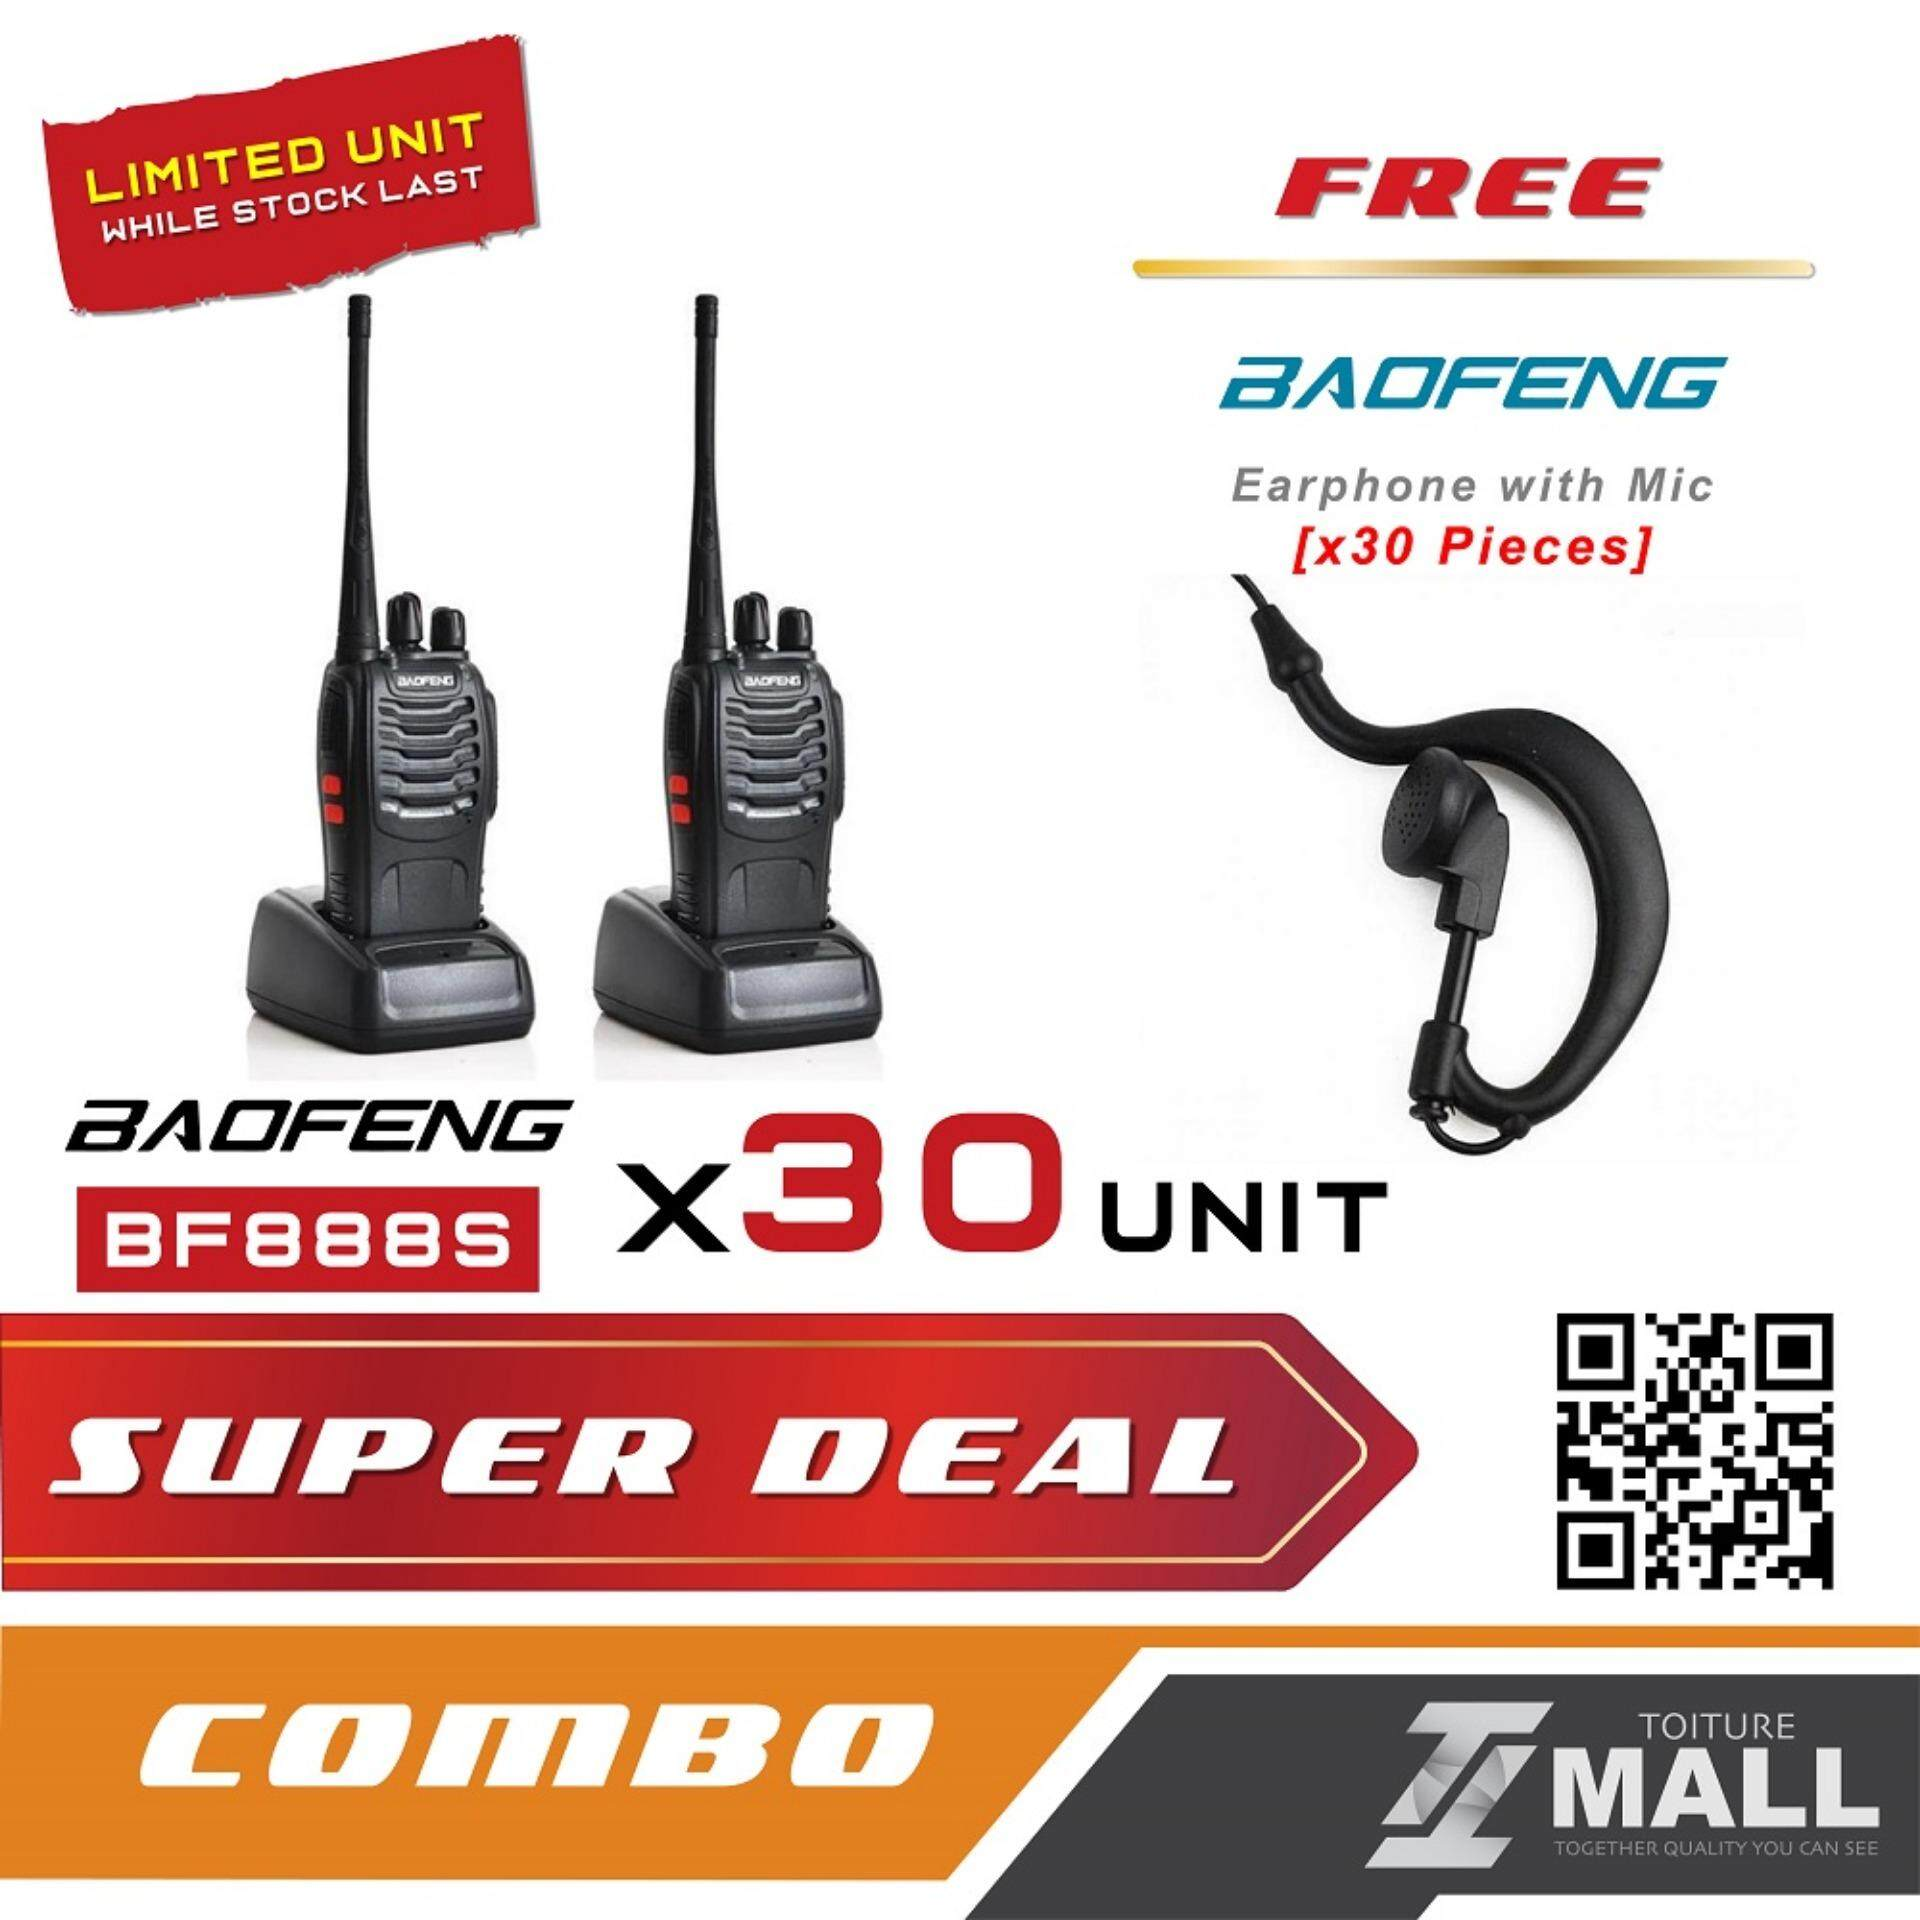 BAOFENG BF-888S Walkie Talkie Two-way Portable CB Radio [30 UNIT] + FREE Earphone [30 UNIT]